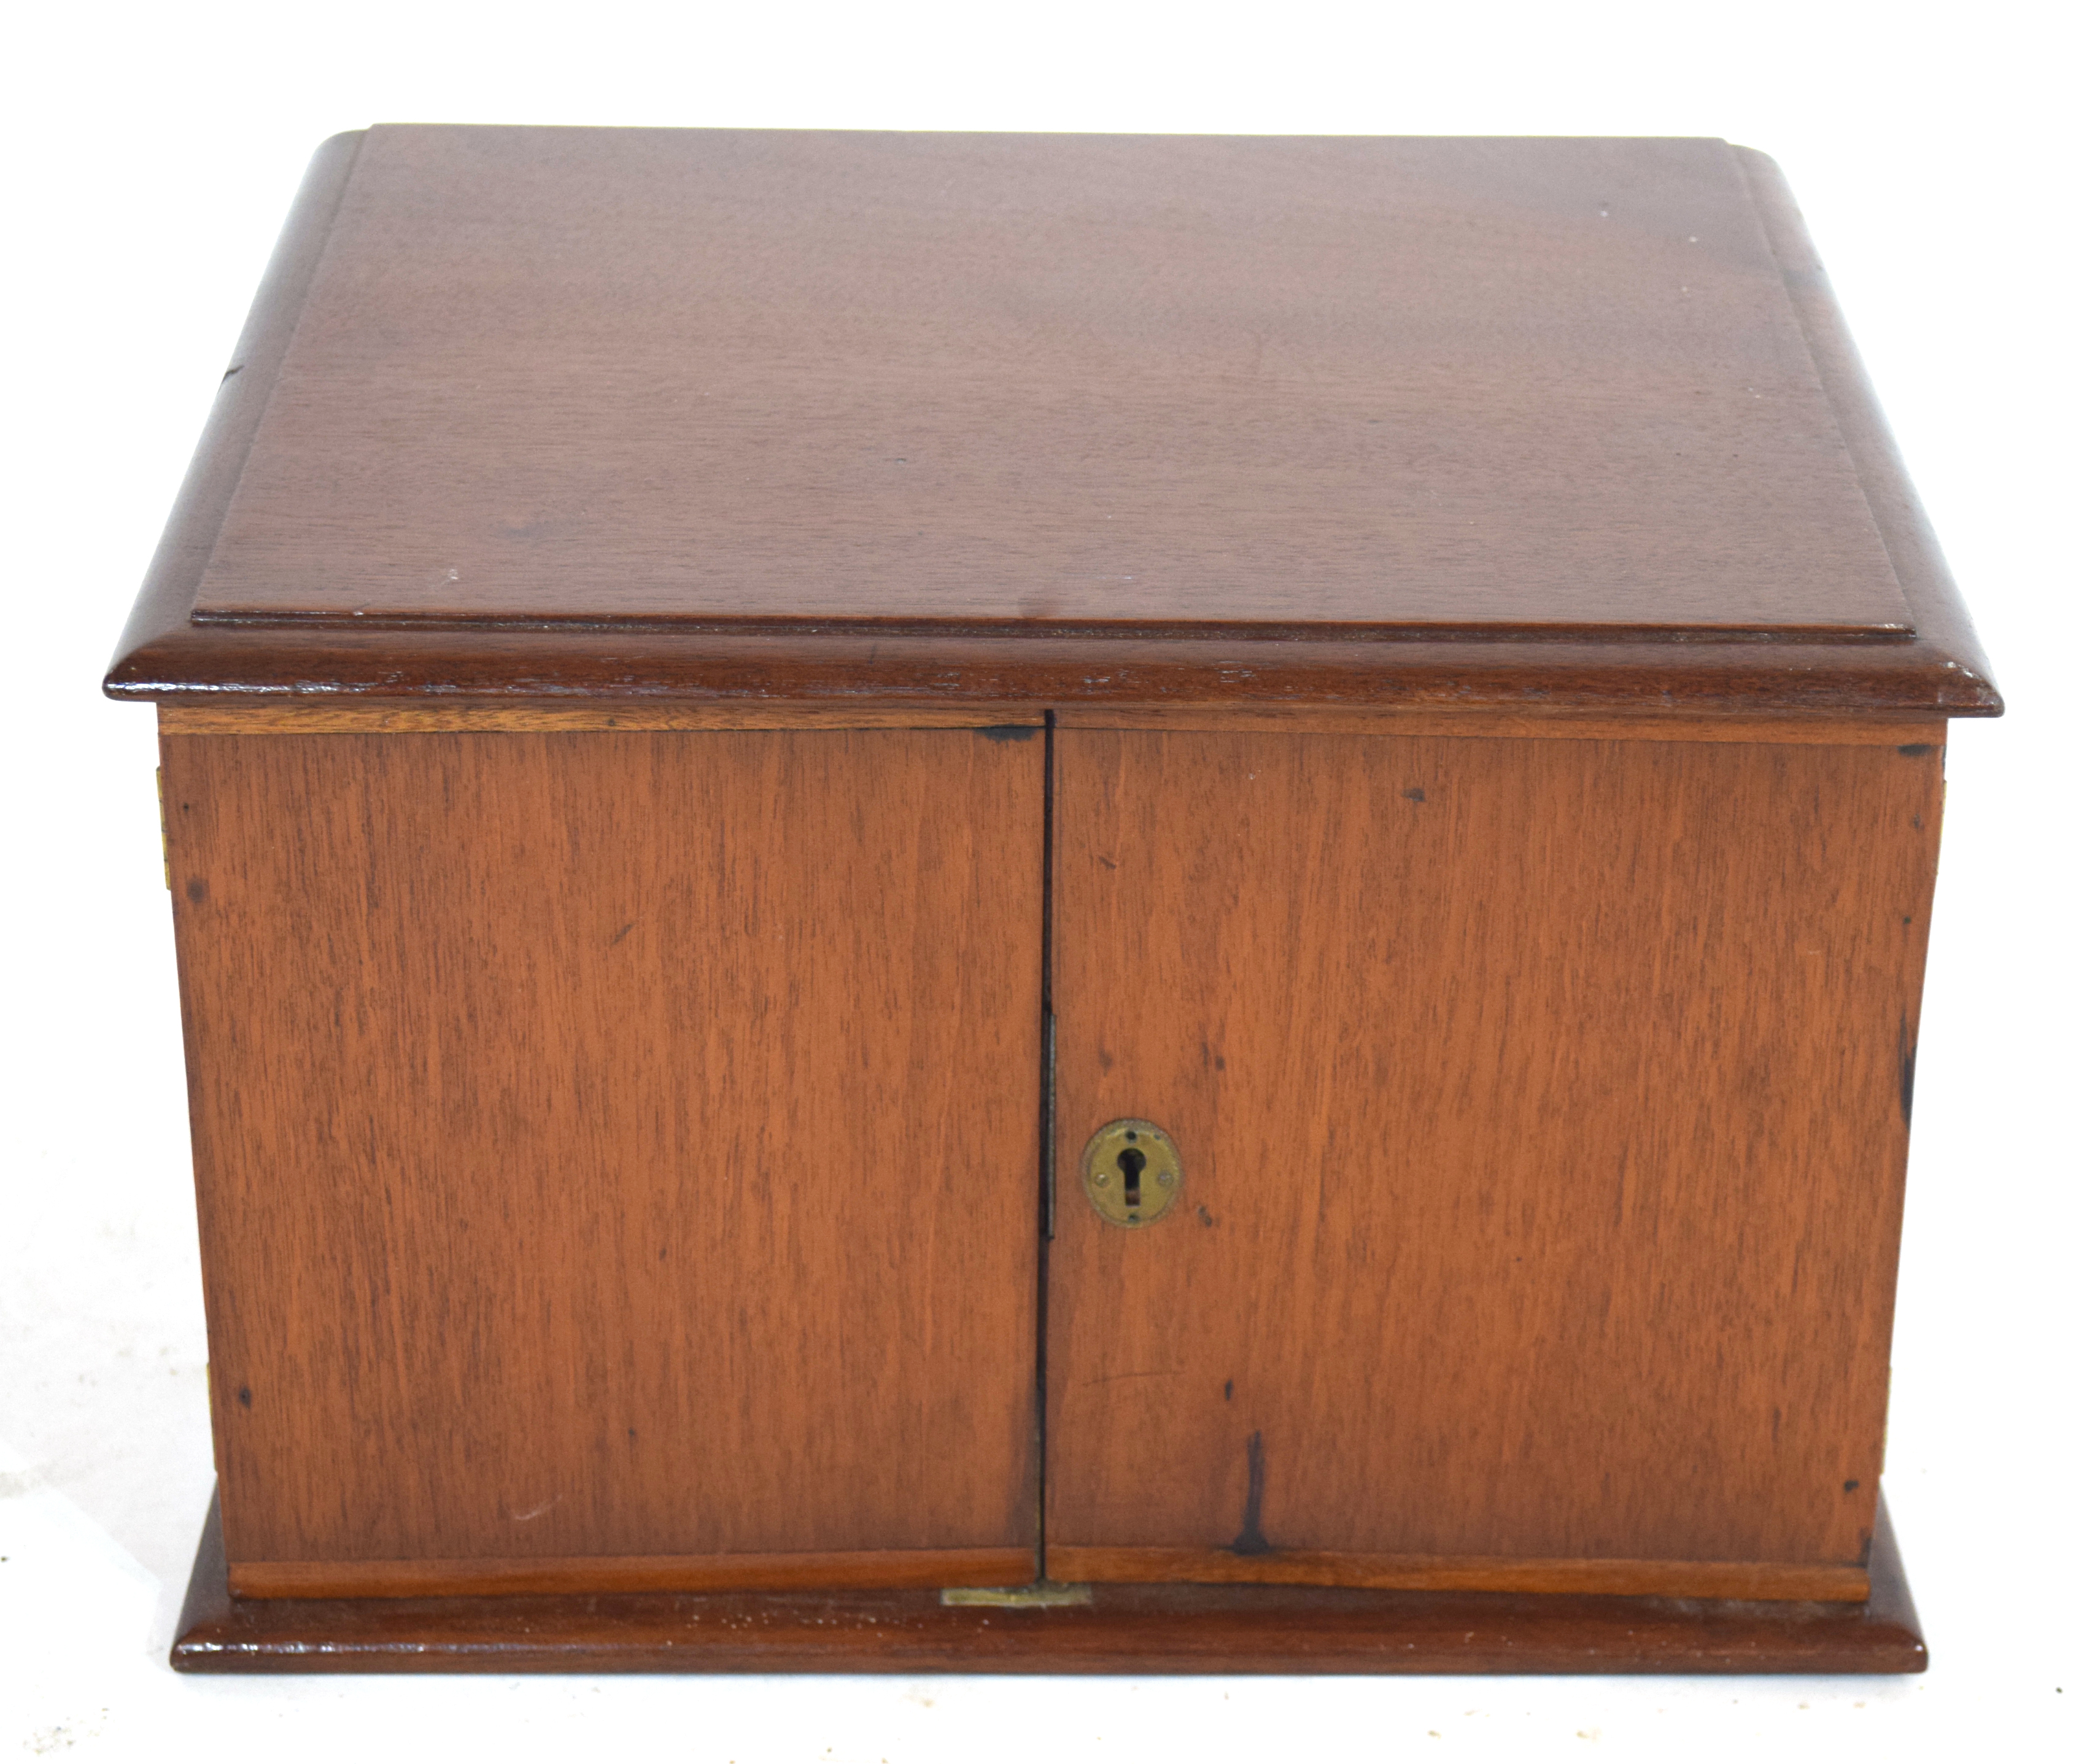 Late 19th/early 20th century hardwood table top cabinet with two doors opening to an interior with